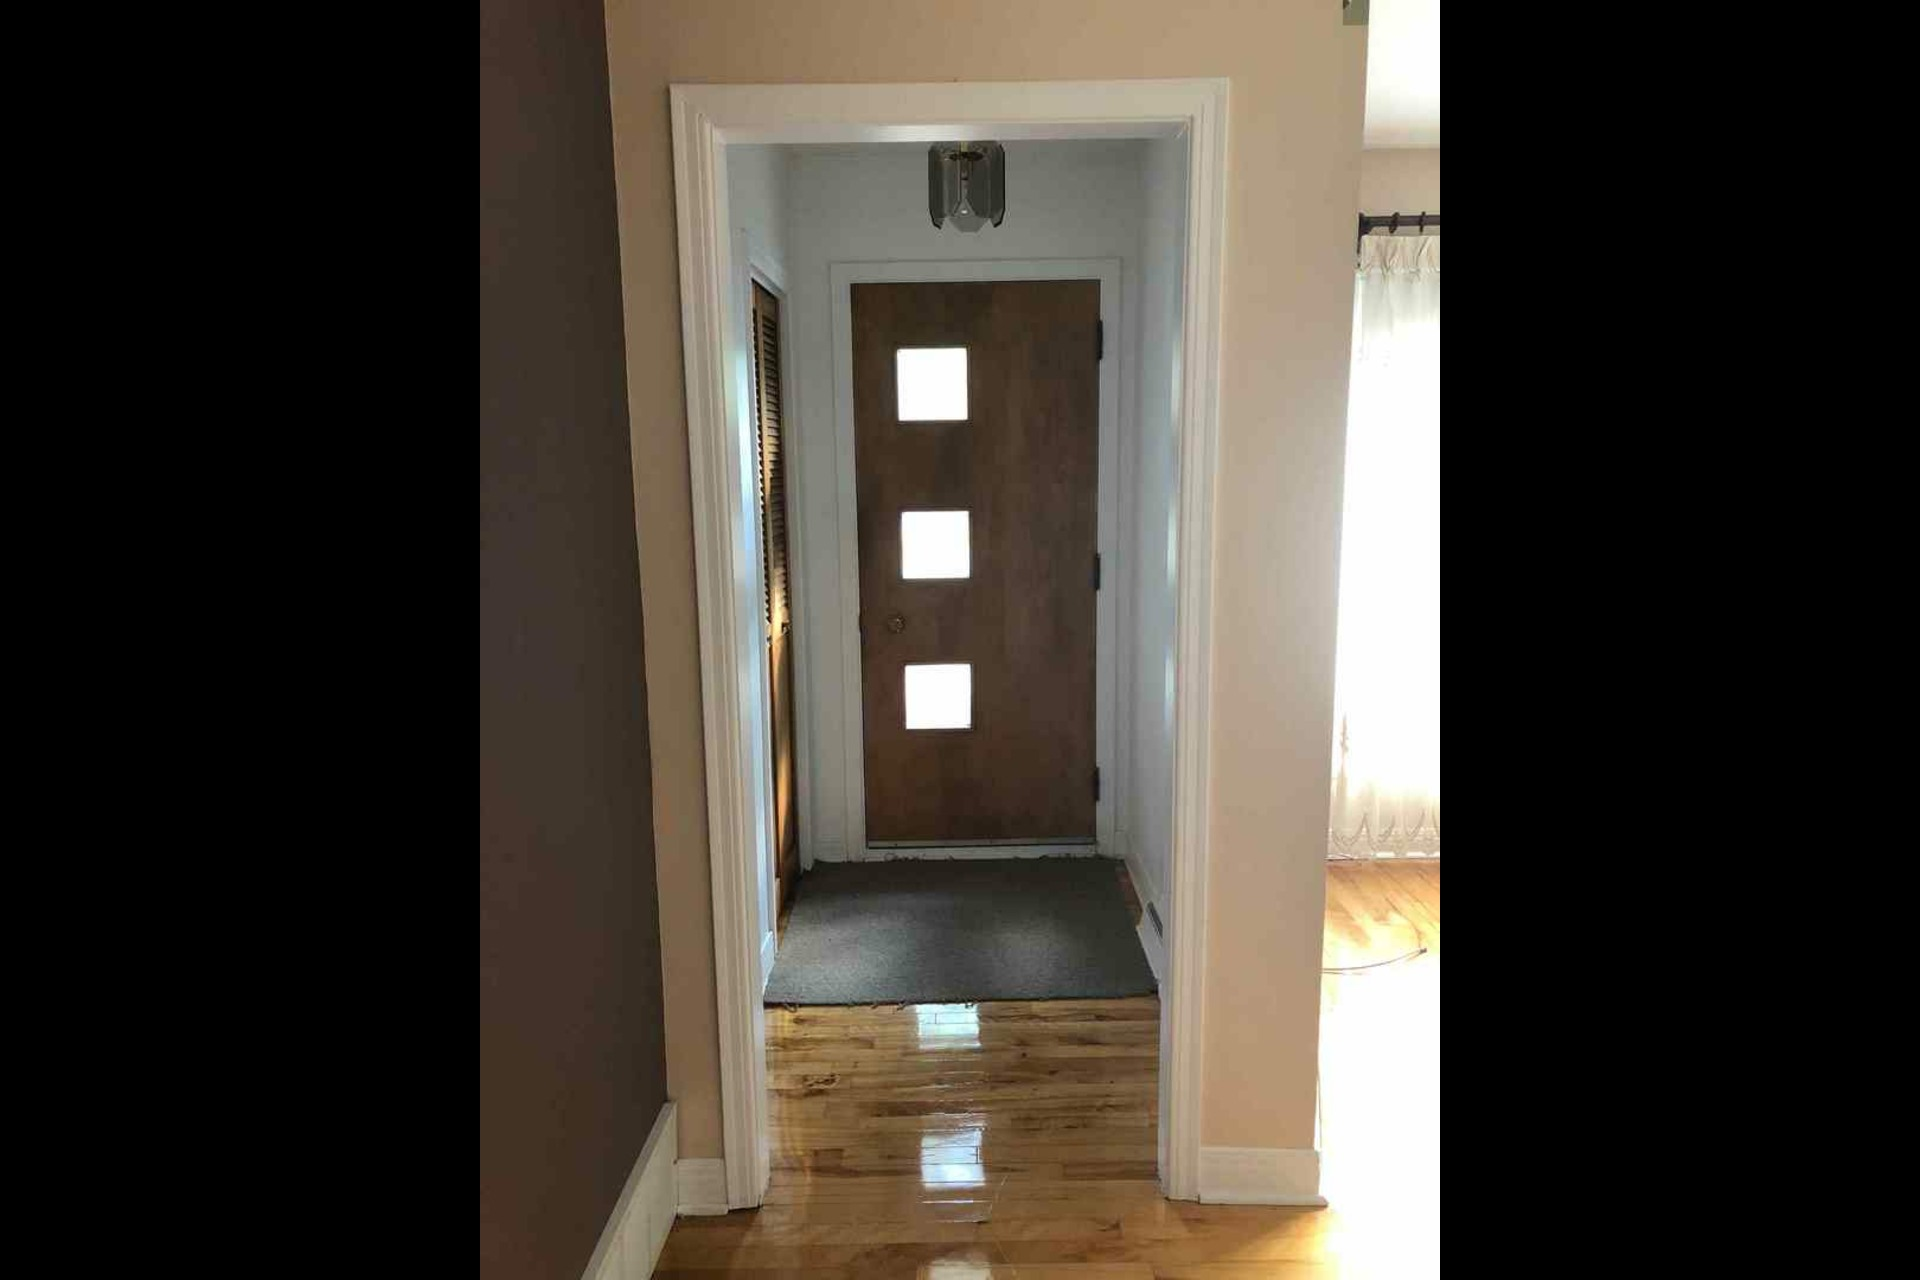 image 7 - House For rent Repentigny - 5 rooms